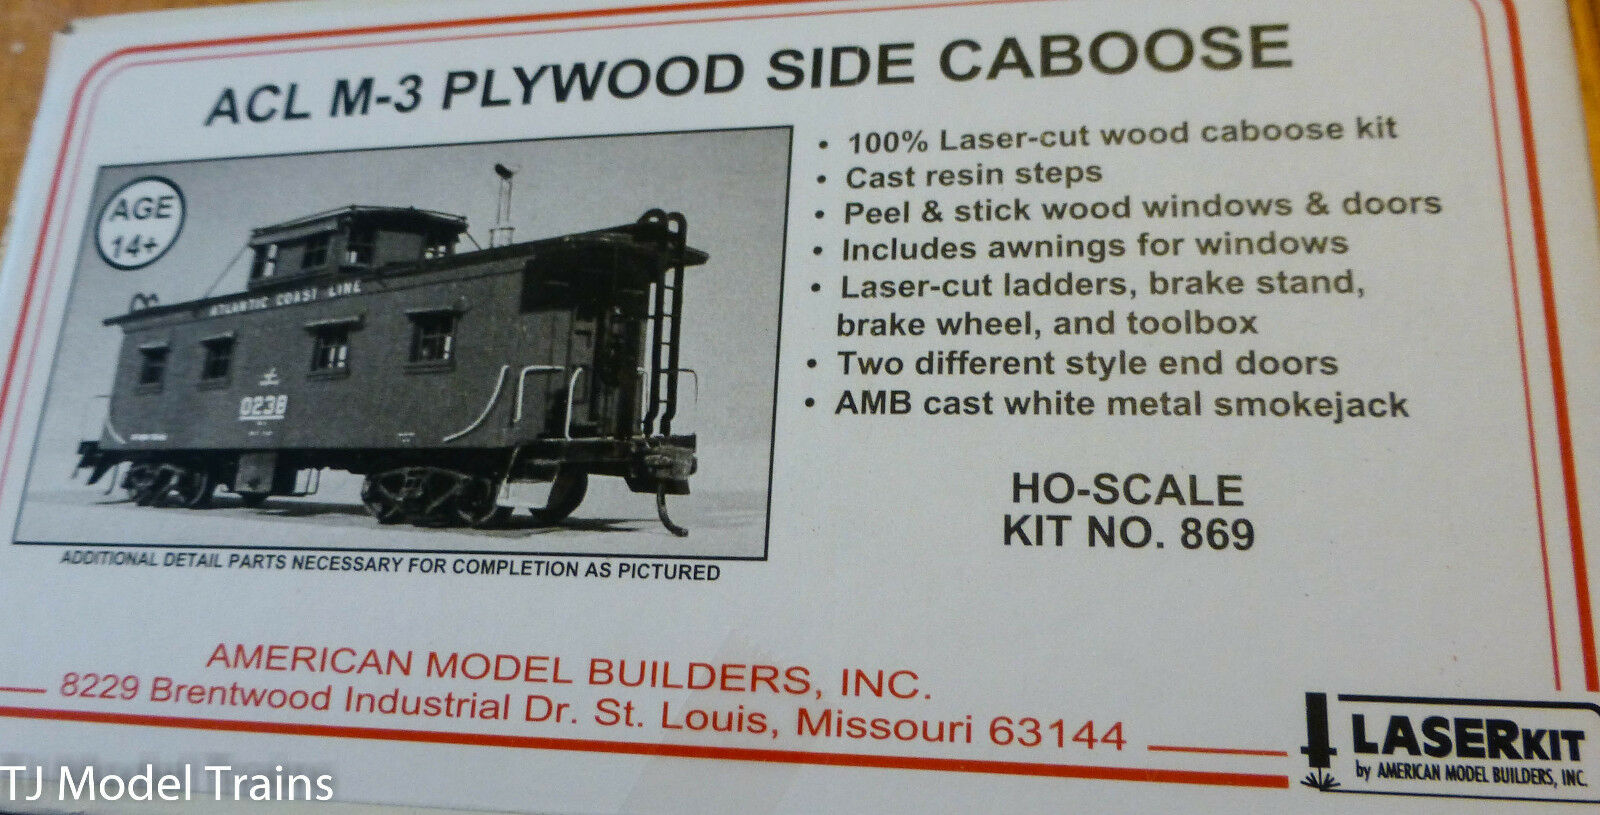 American Model Builders HO Wood Caboose - Atlantic Caost Line M-3 Caboose